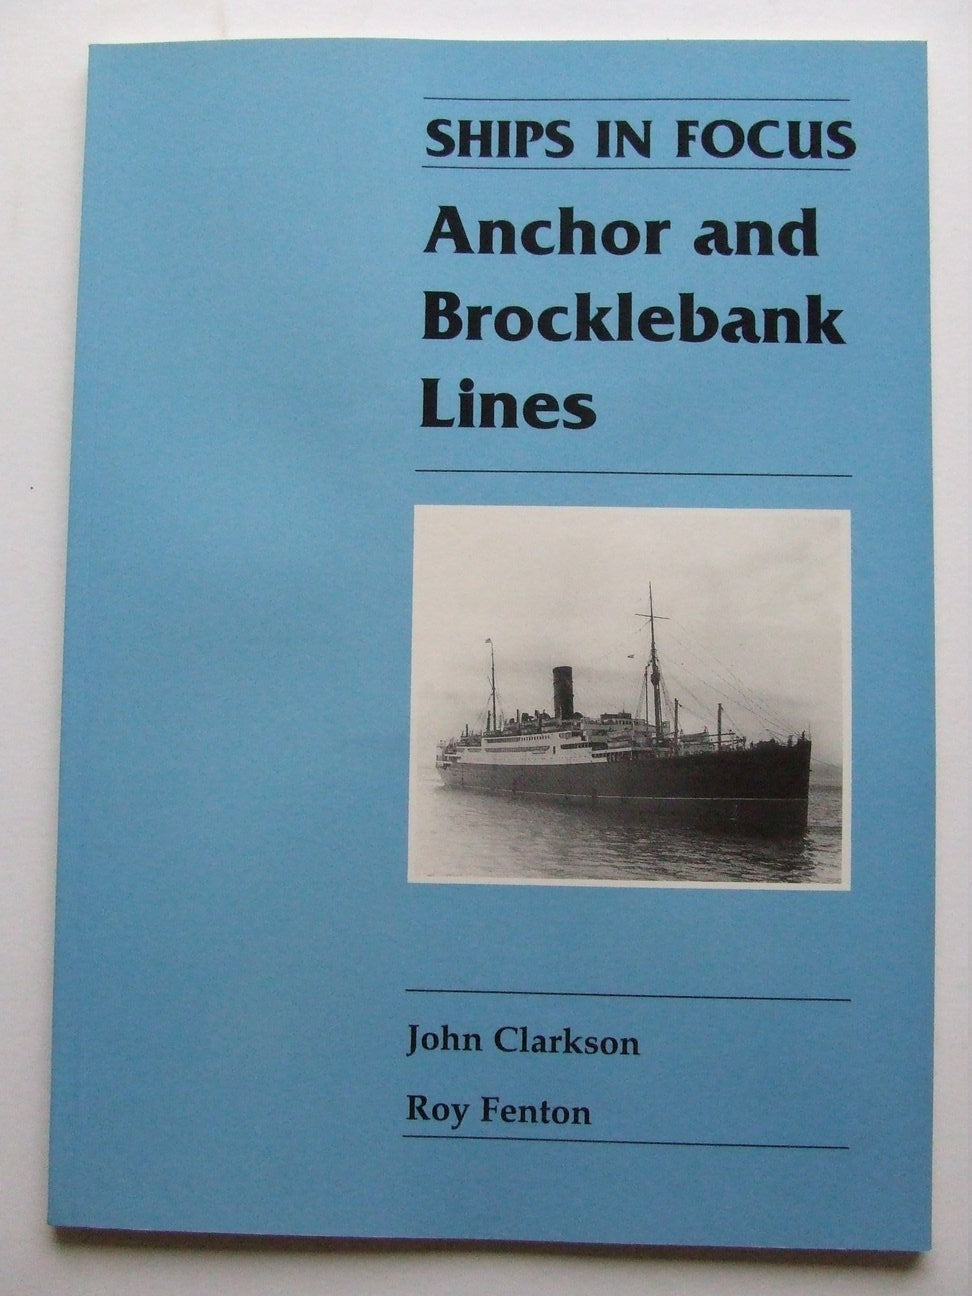 Ships in Focus - Anchor and Brocklebank Lines